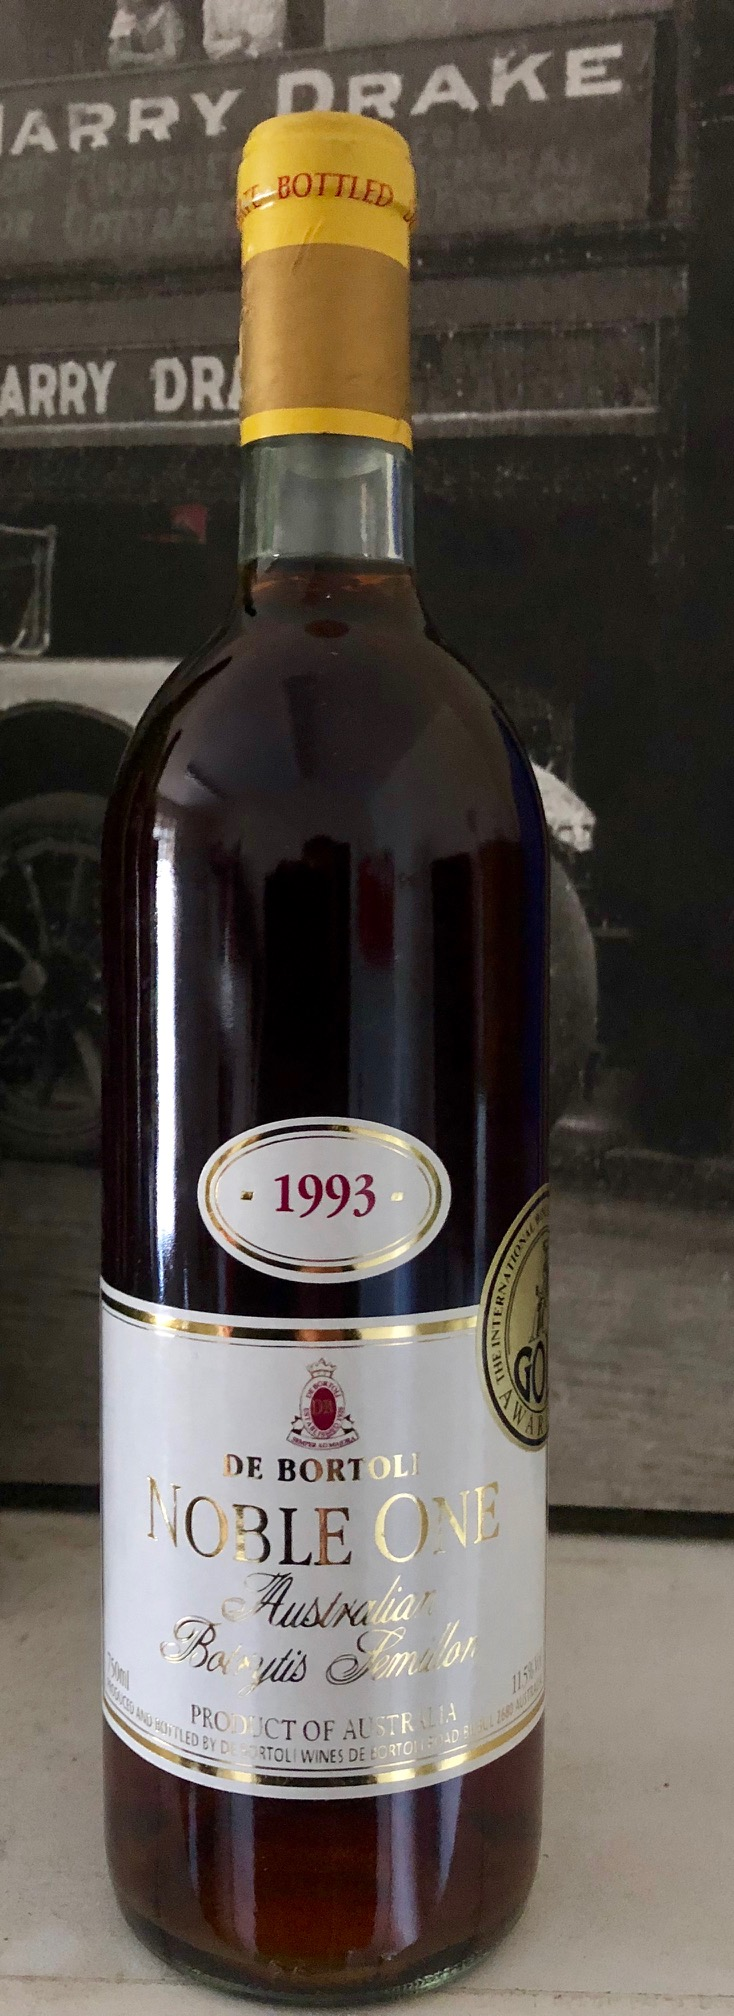 Debortoli - Noble One 1993 750ml